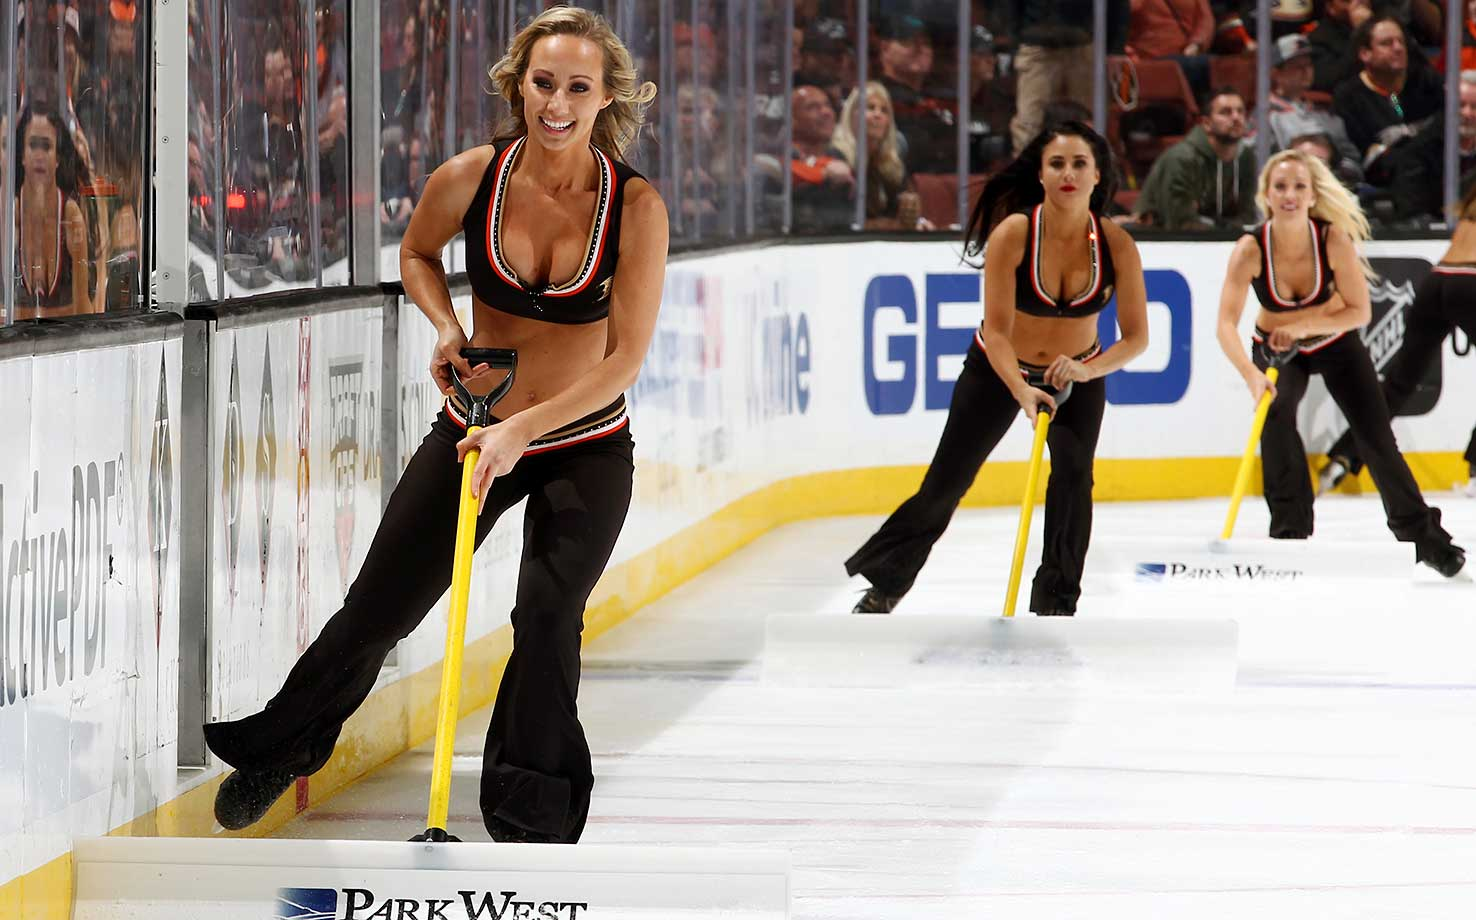 The Anaheim Ducks Power Players clear the ice during a break in play against the San Jose Sharks at Honda Center in Anaheim, Calif.